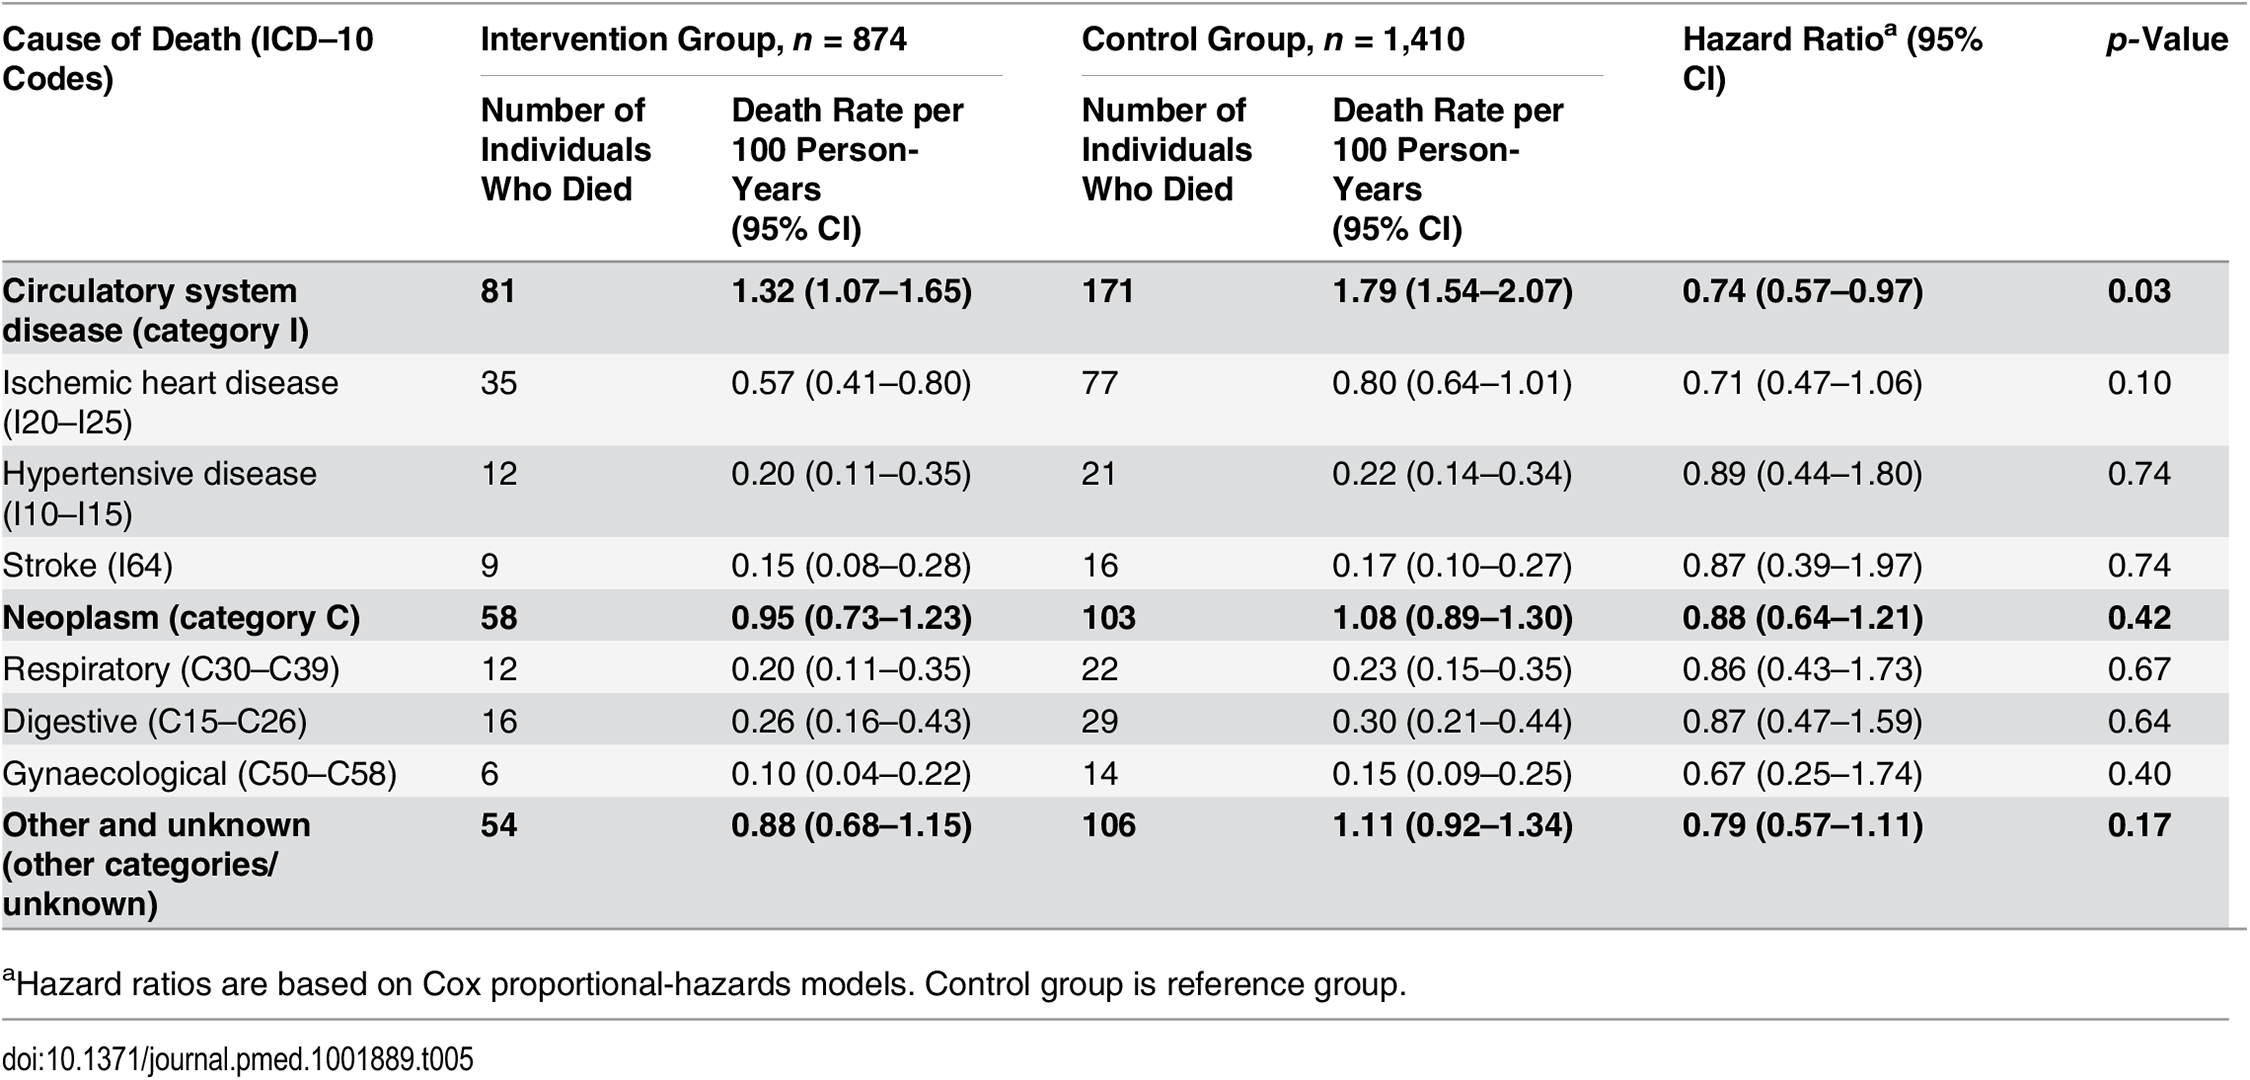 Secondary outcome at 8-y follow-up: mortality rates for main causes and sub-causes of death.